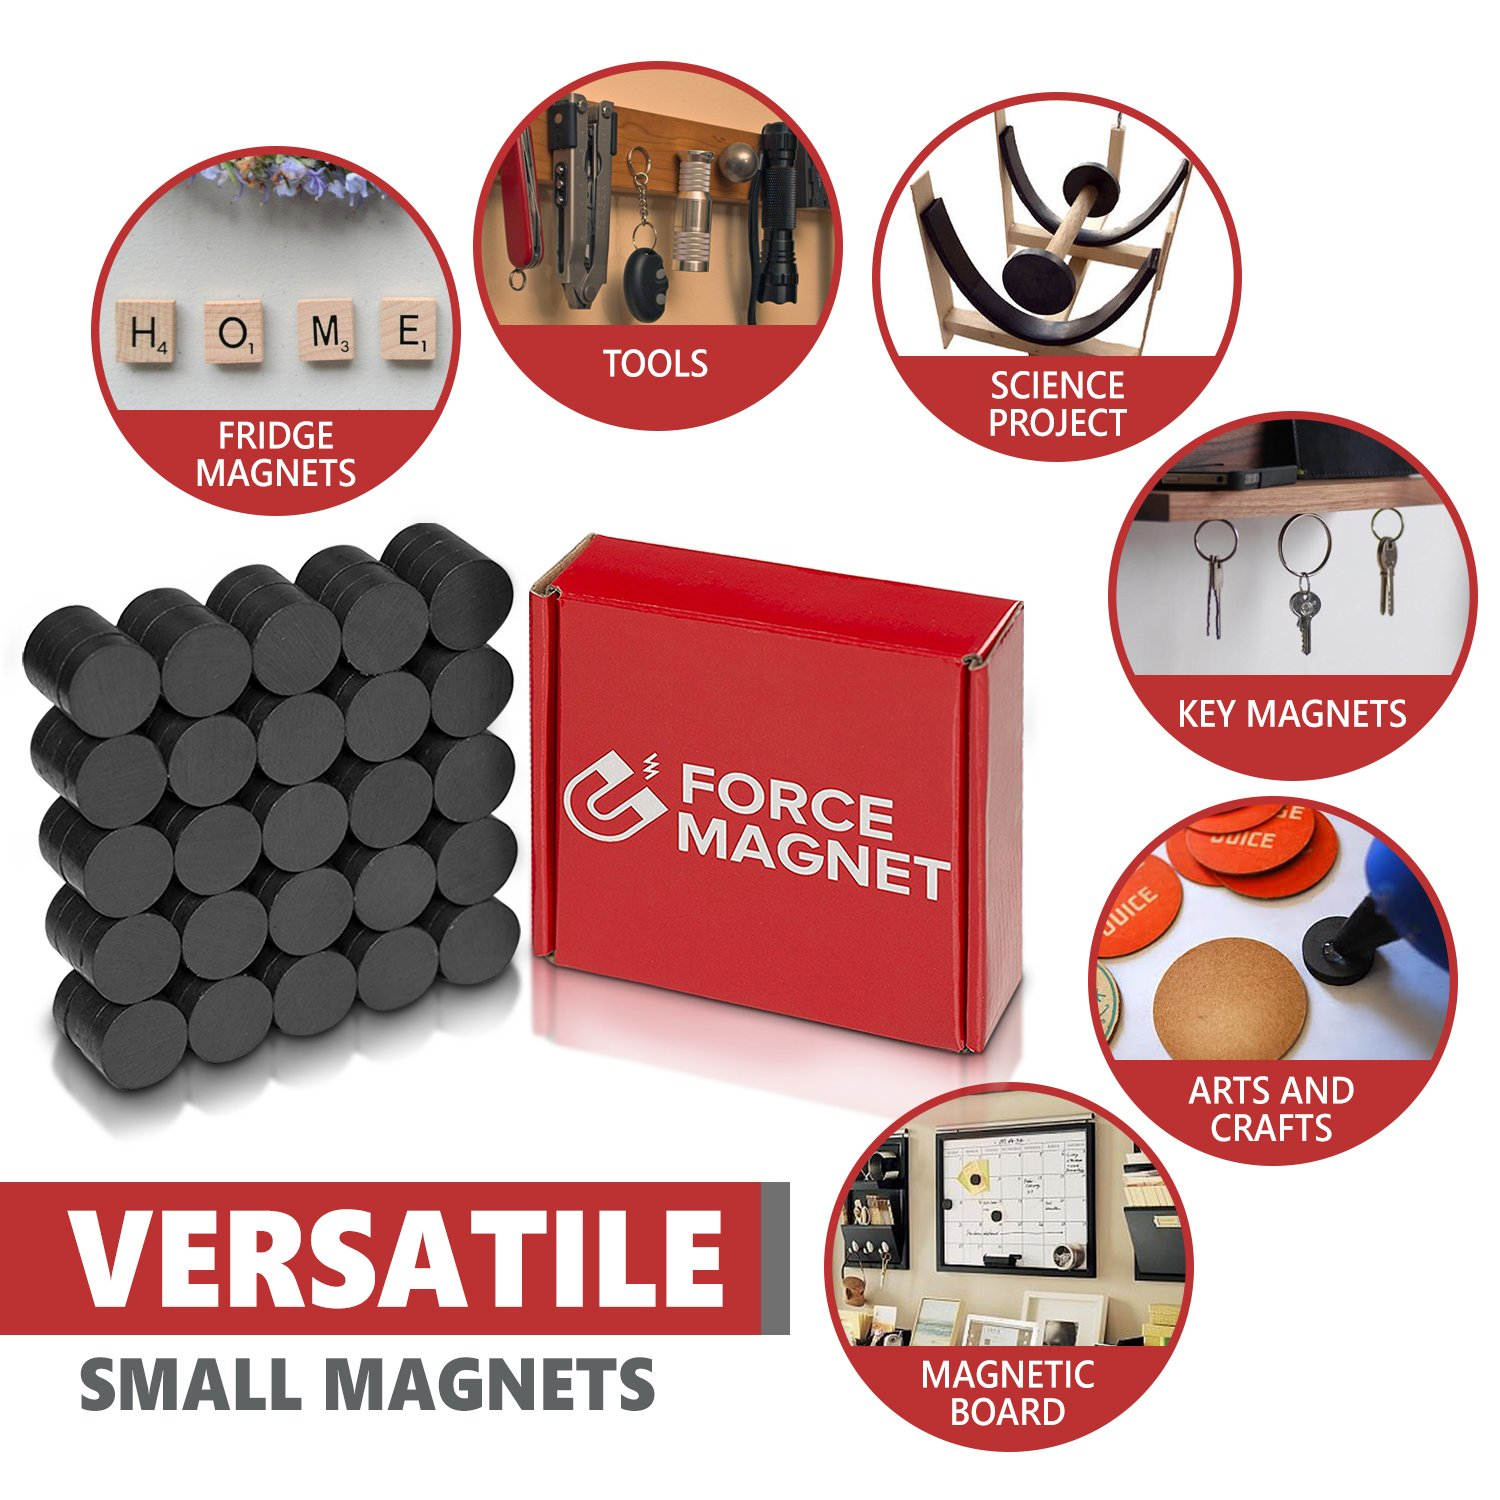 force magnet 100 powerful magnets tiny 18 mm round disc safest